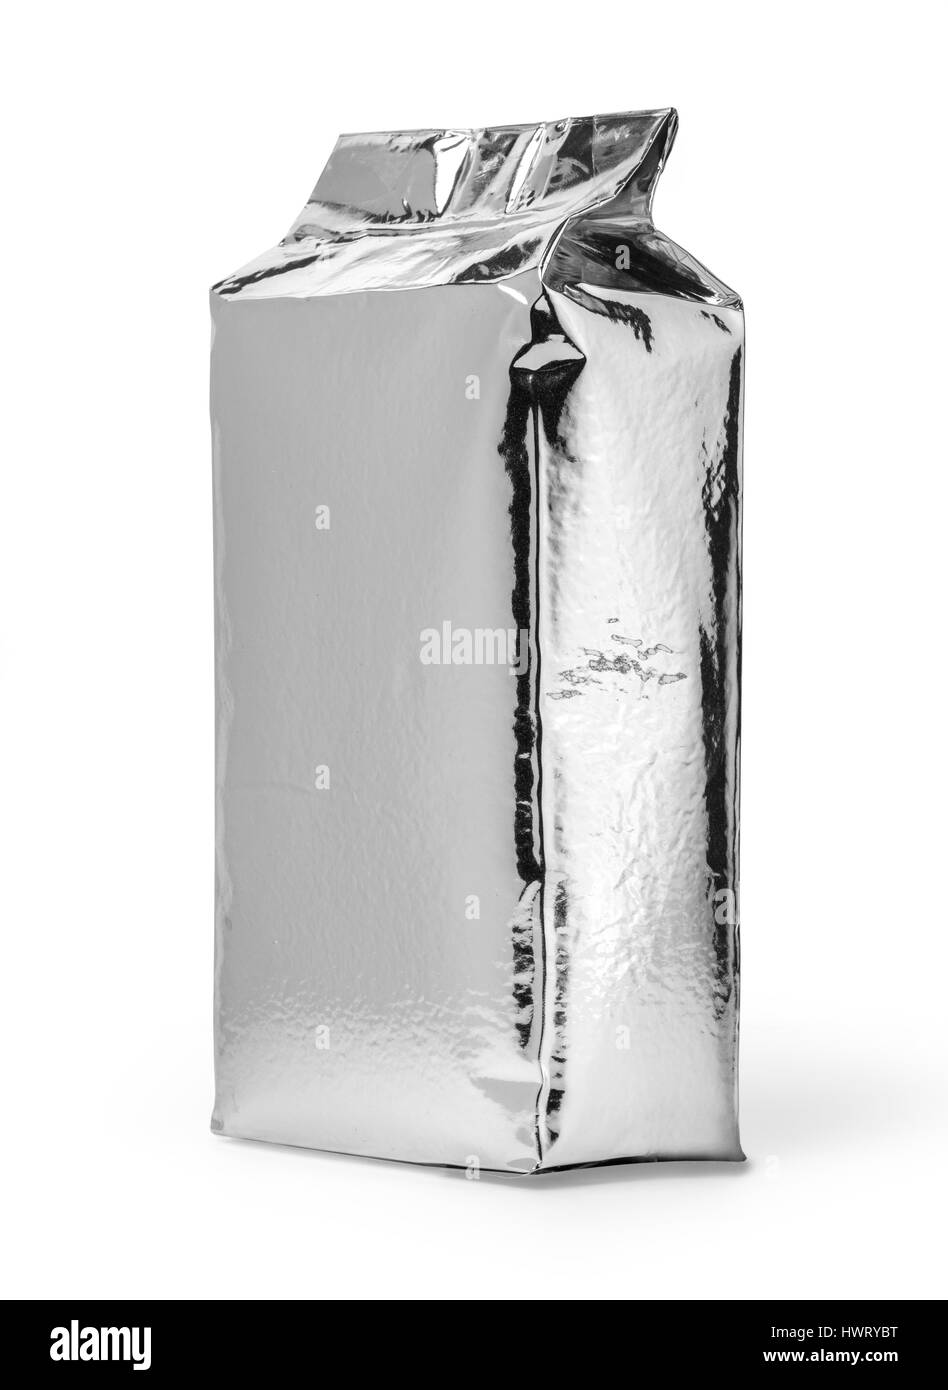 close up of an aluminum bag on white background  with clipping path - Stock Image